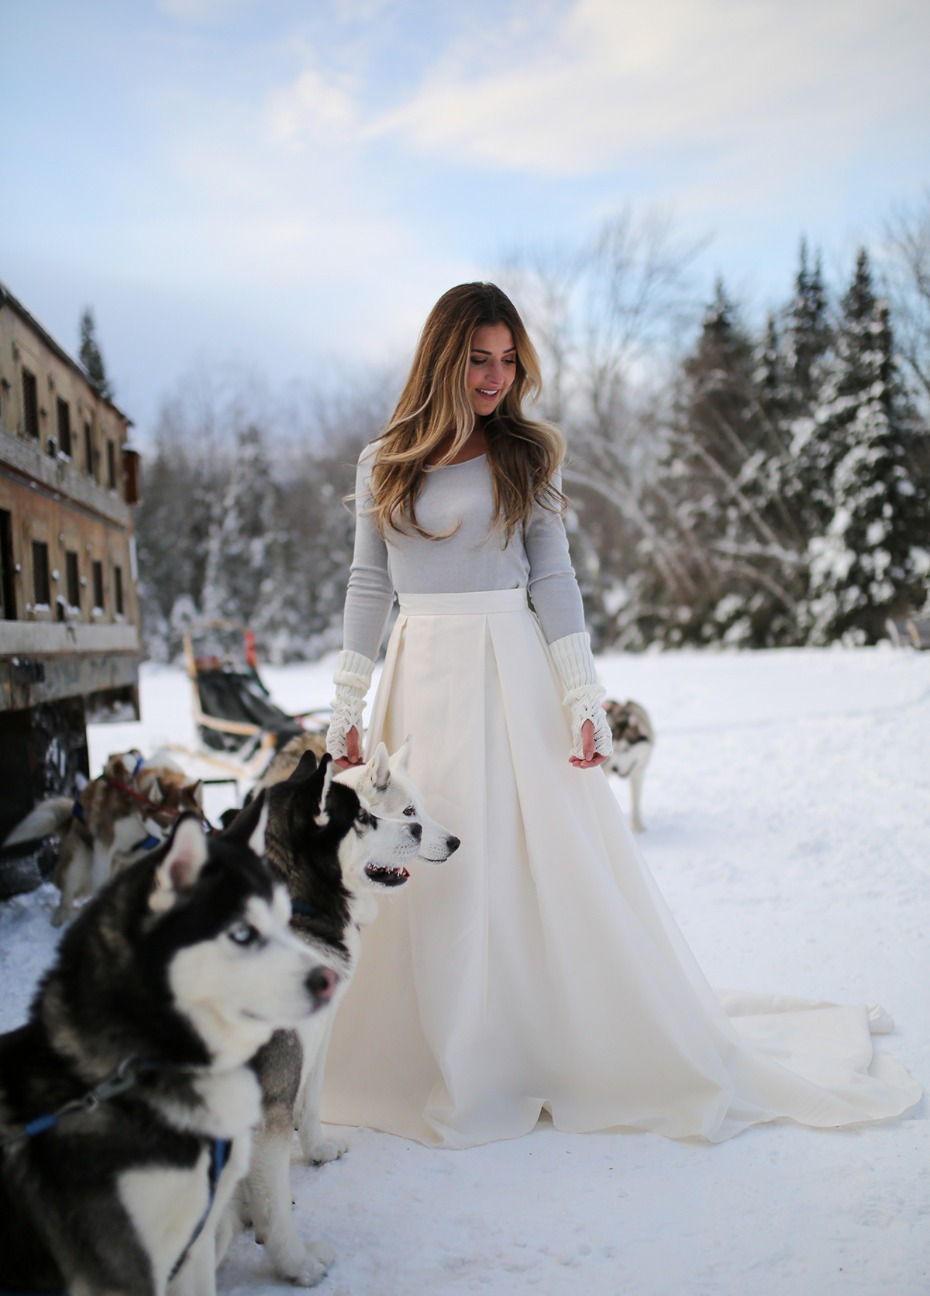 winter wedding ideas plus a dog sled team